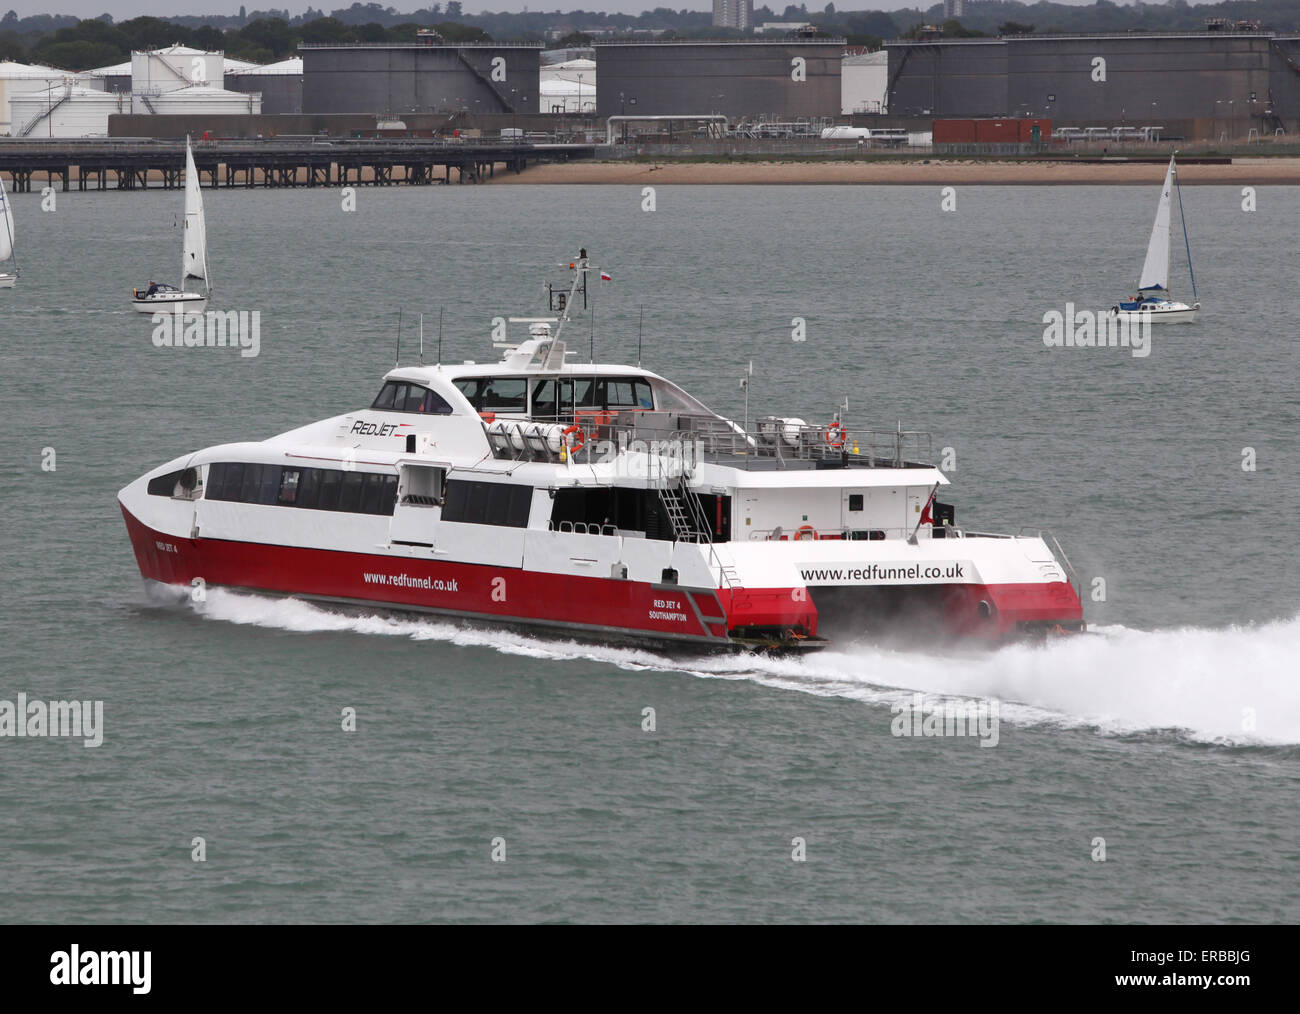 Red Funnel Ferries red jet hi-speed ferry - Stock Image